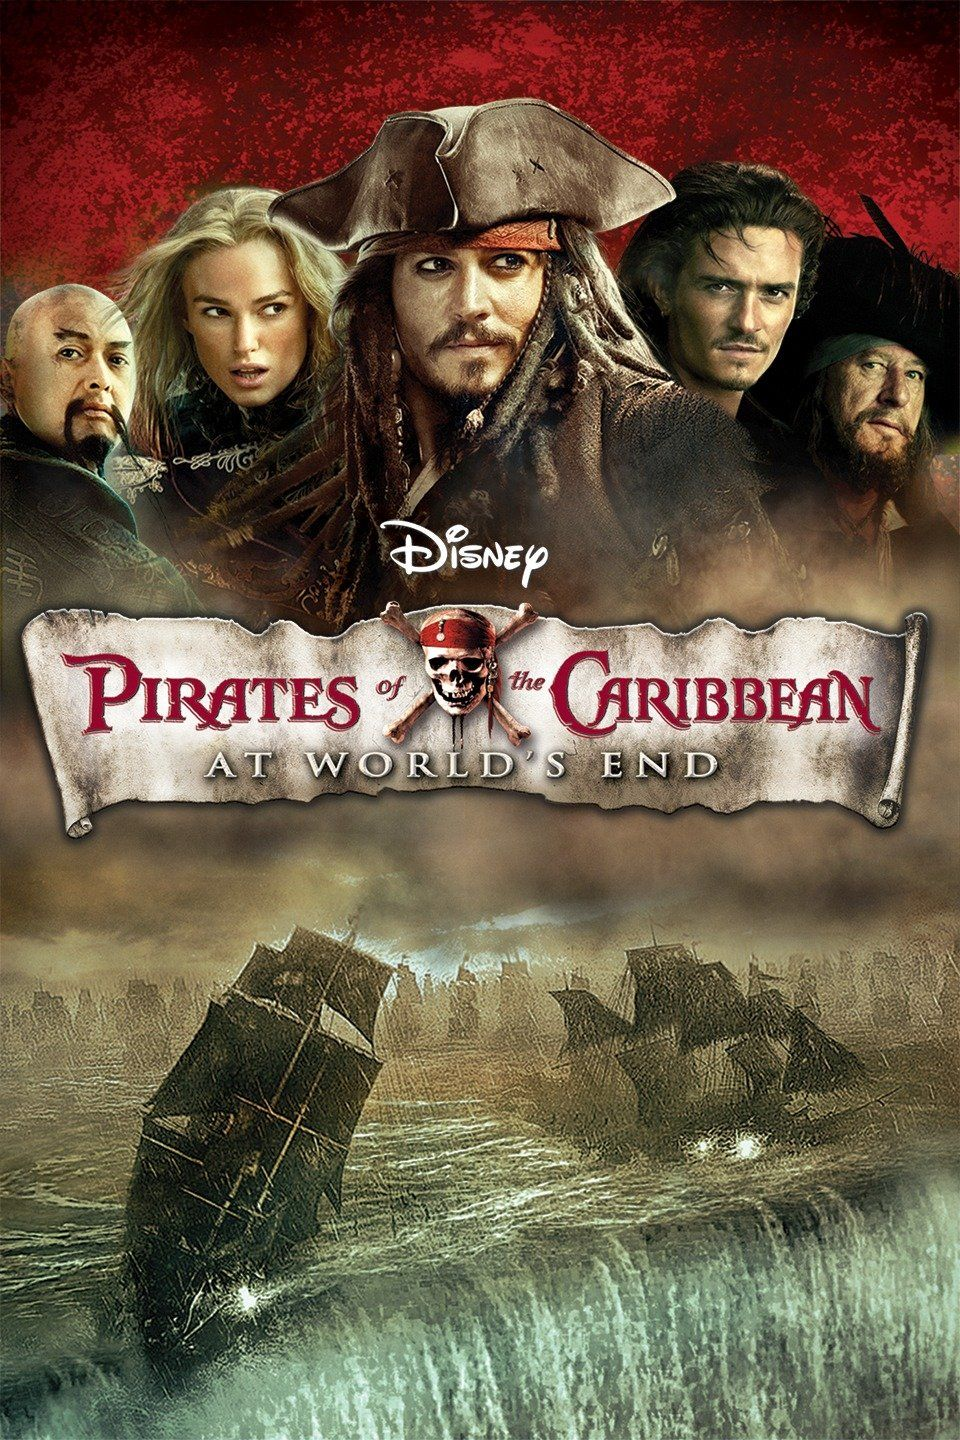 pirates of the caribbean full movie in english download 720p